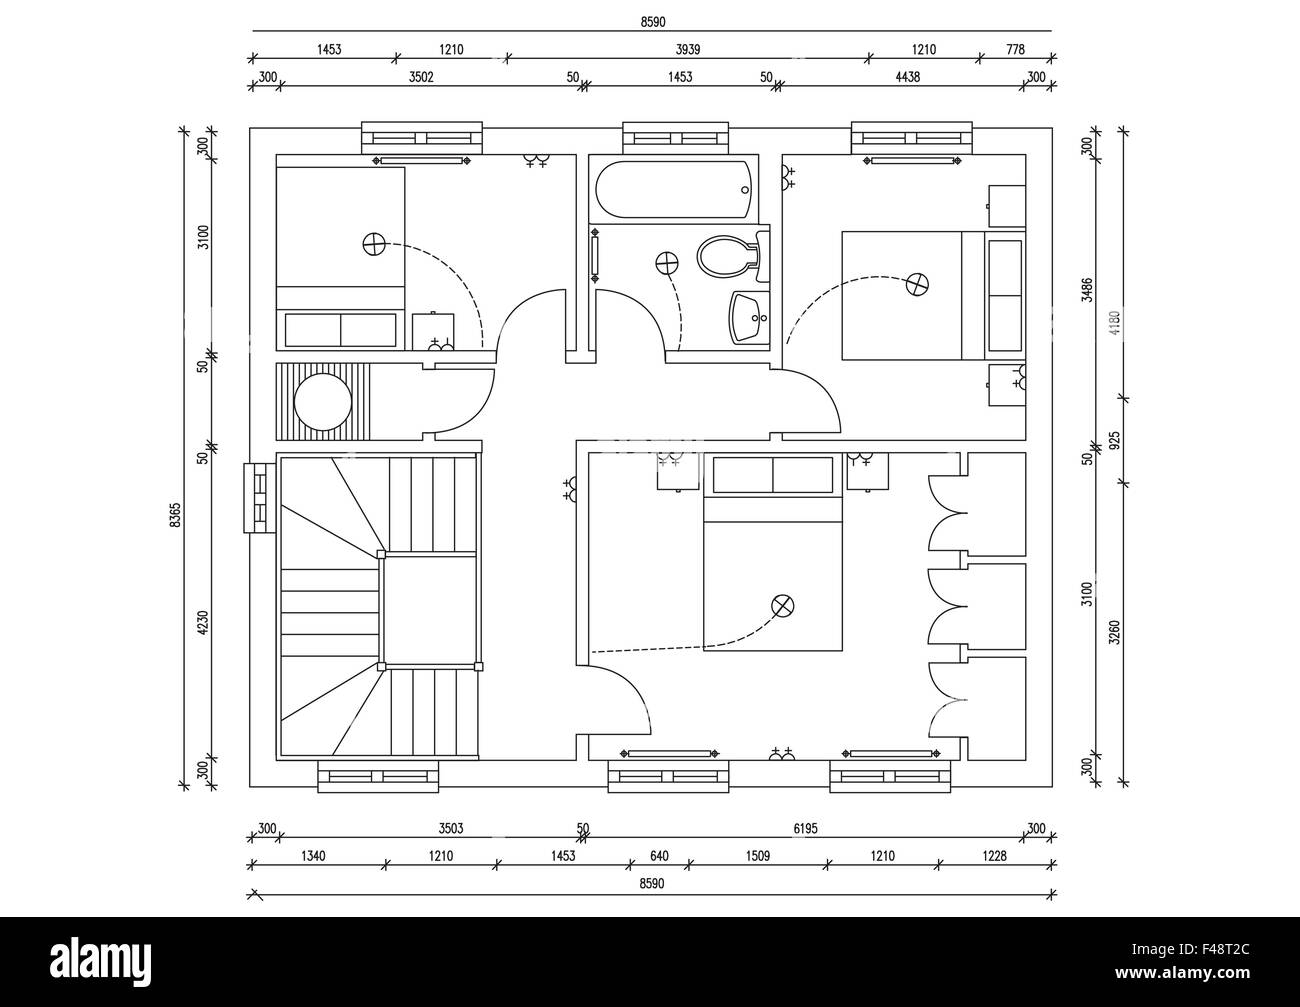 Blueprint plan of 3 bedroom house stock photo 88704964 alamy blueprint plan of 3 bedroom house malvernweather